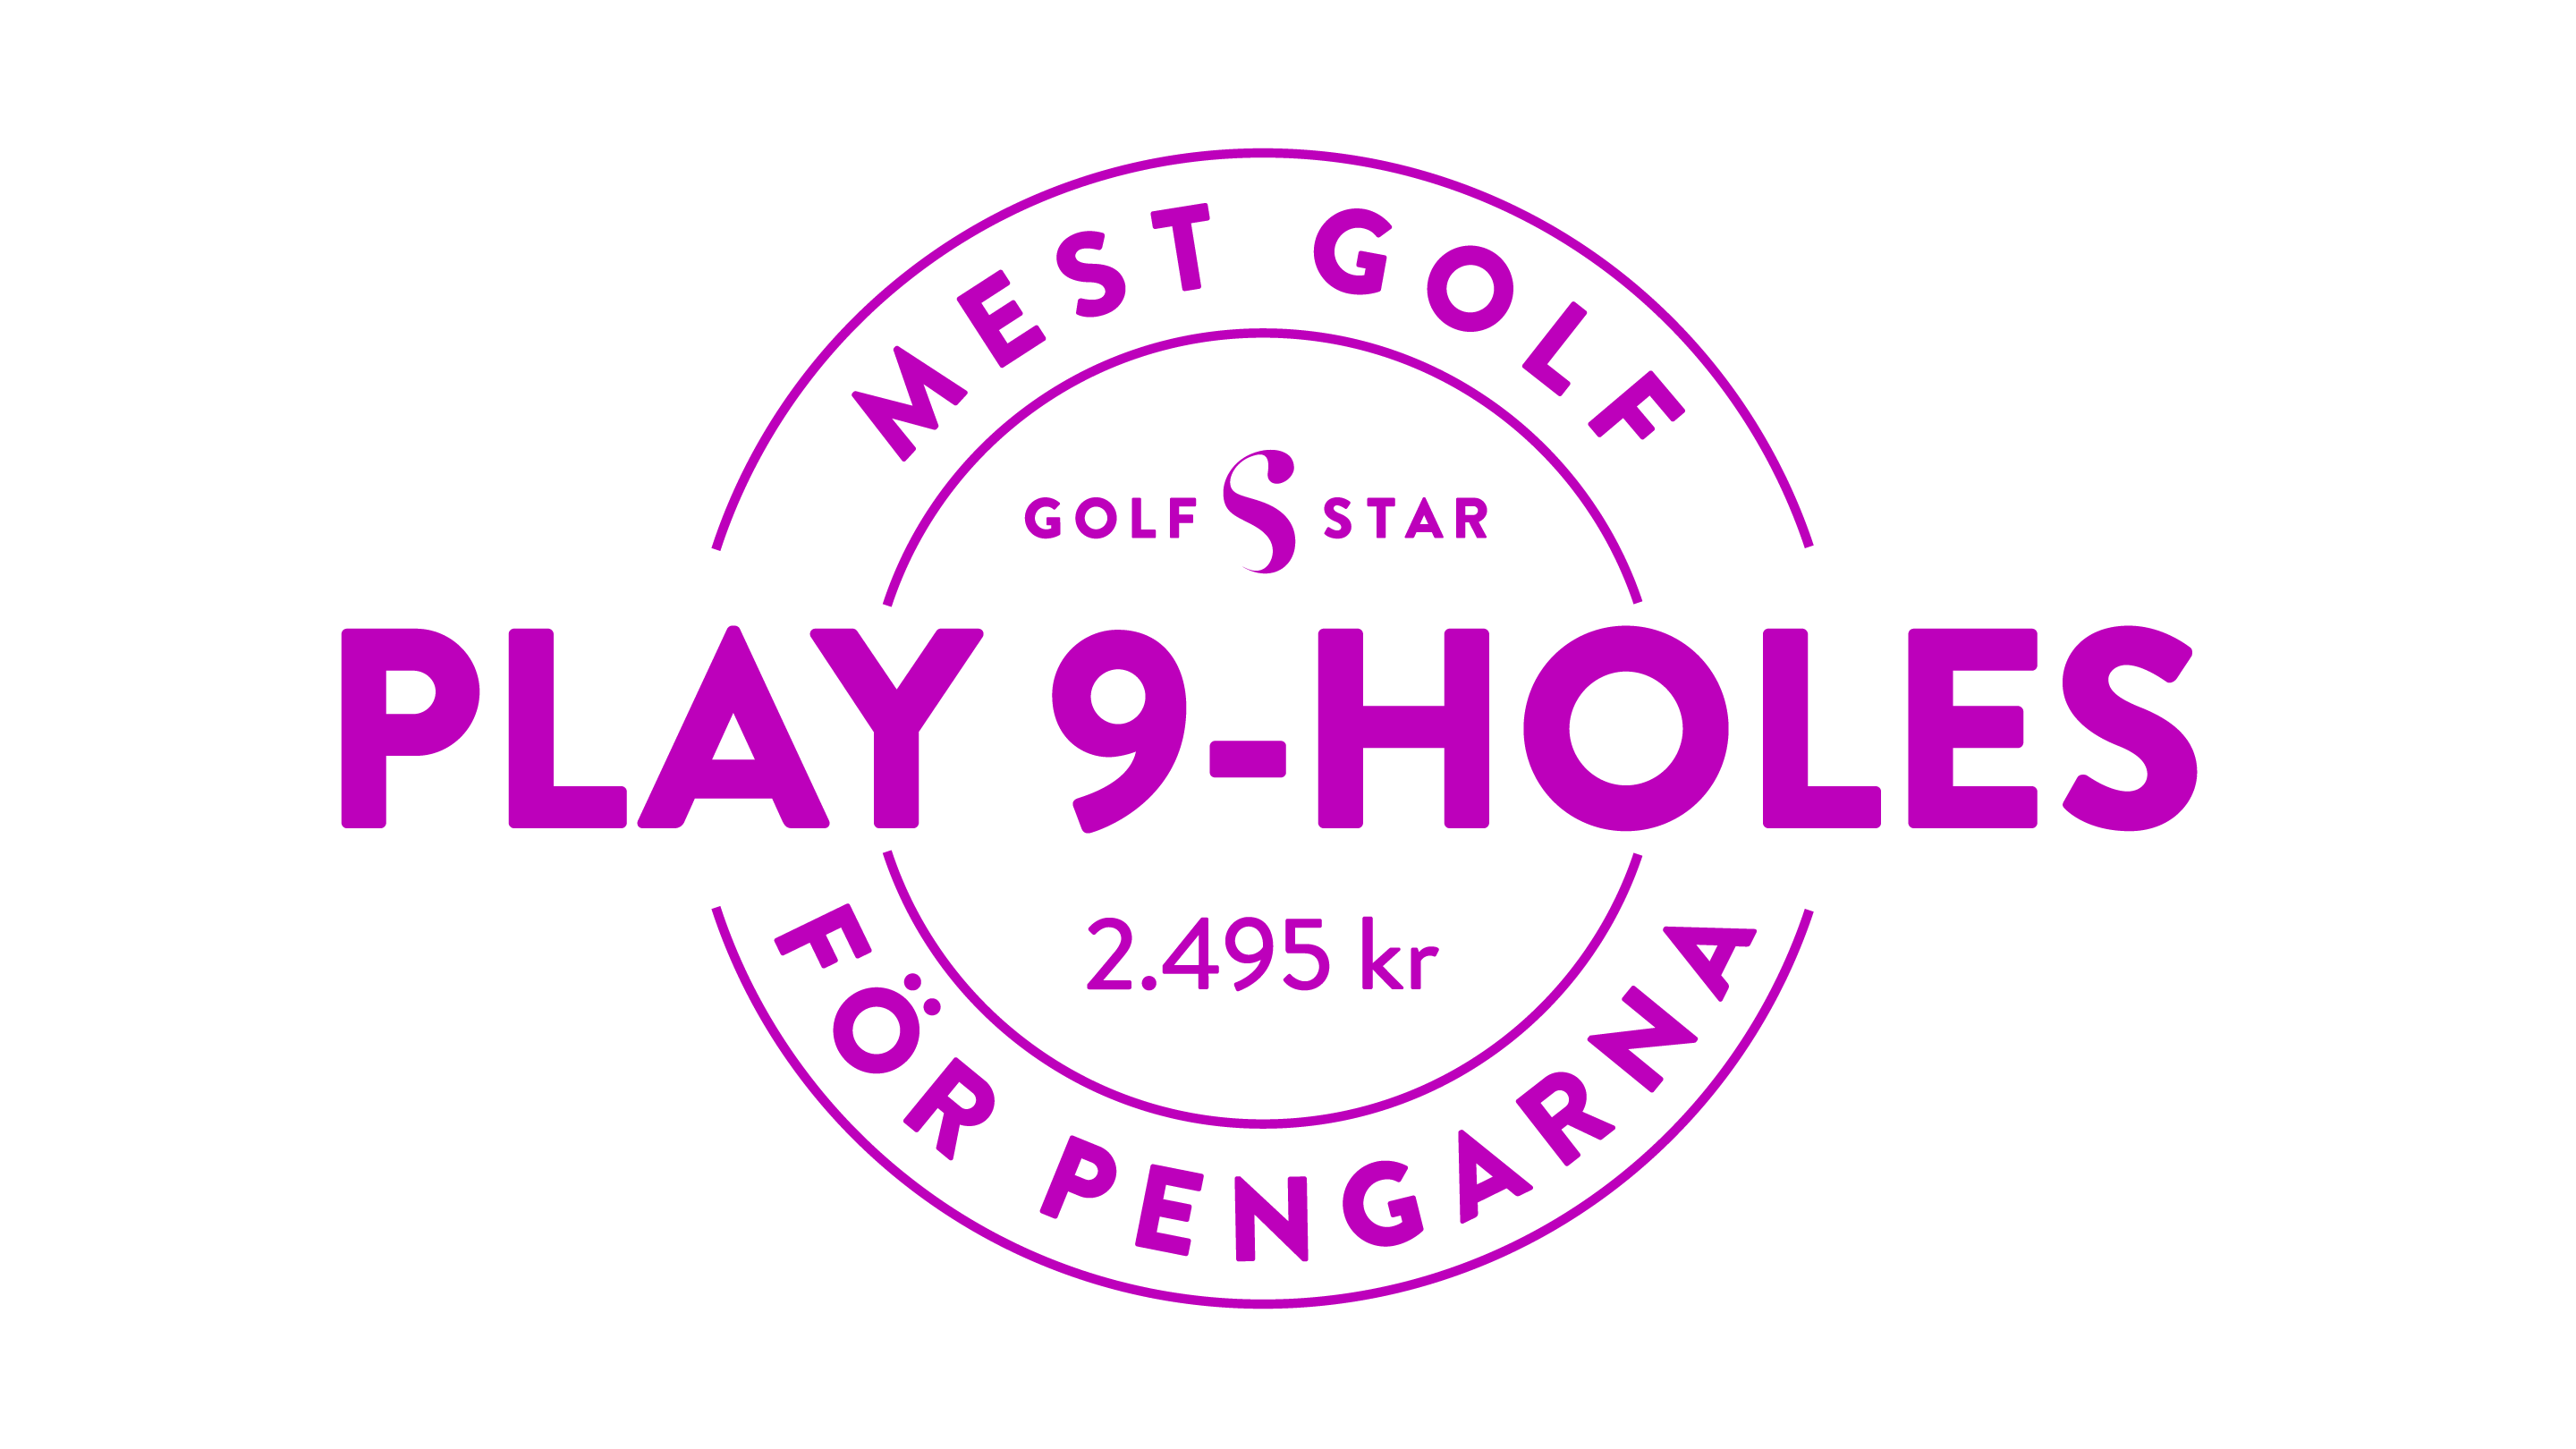 GolfStar Play 9-holes